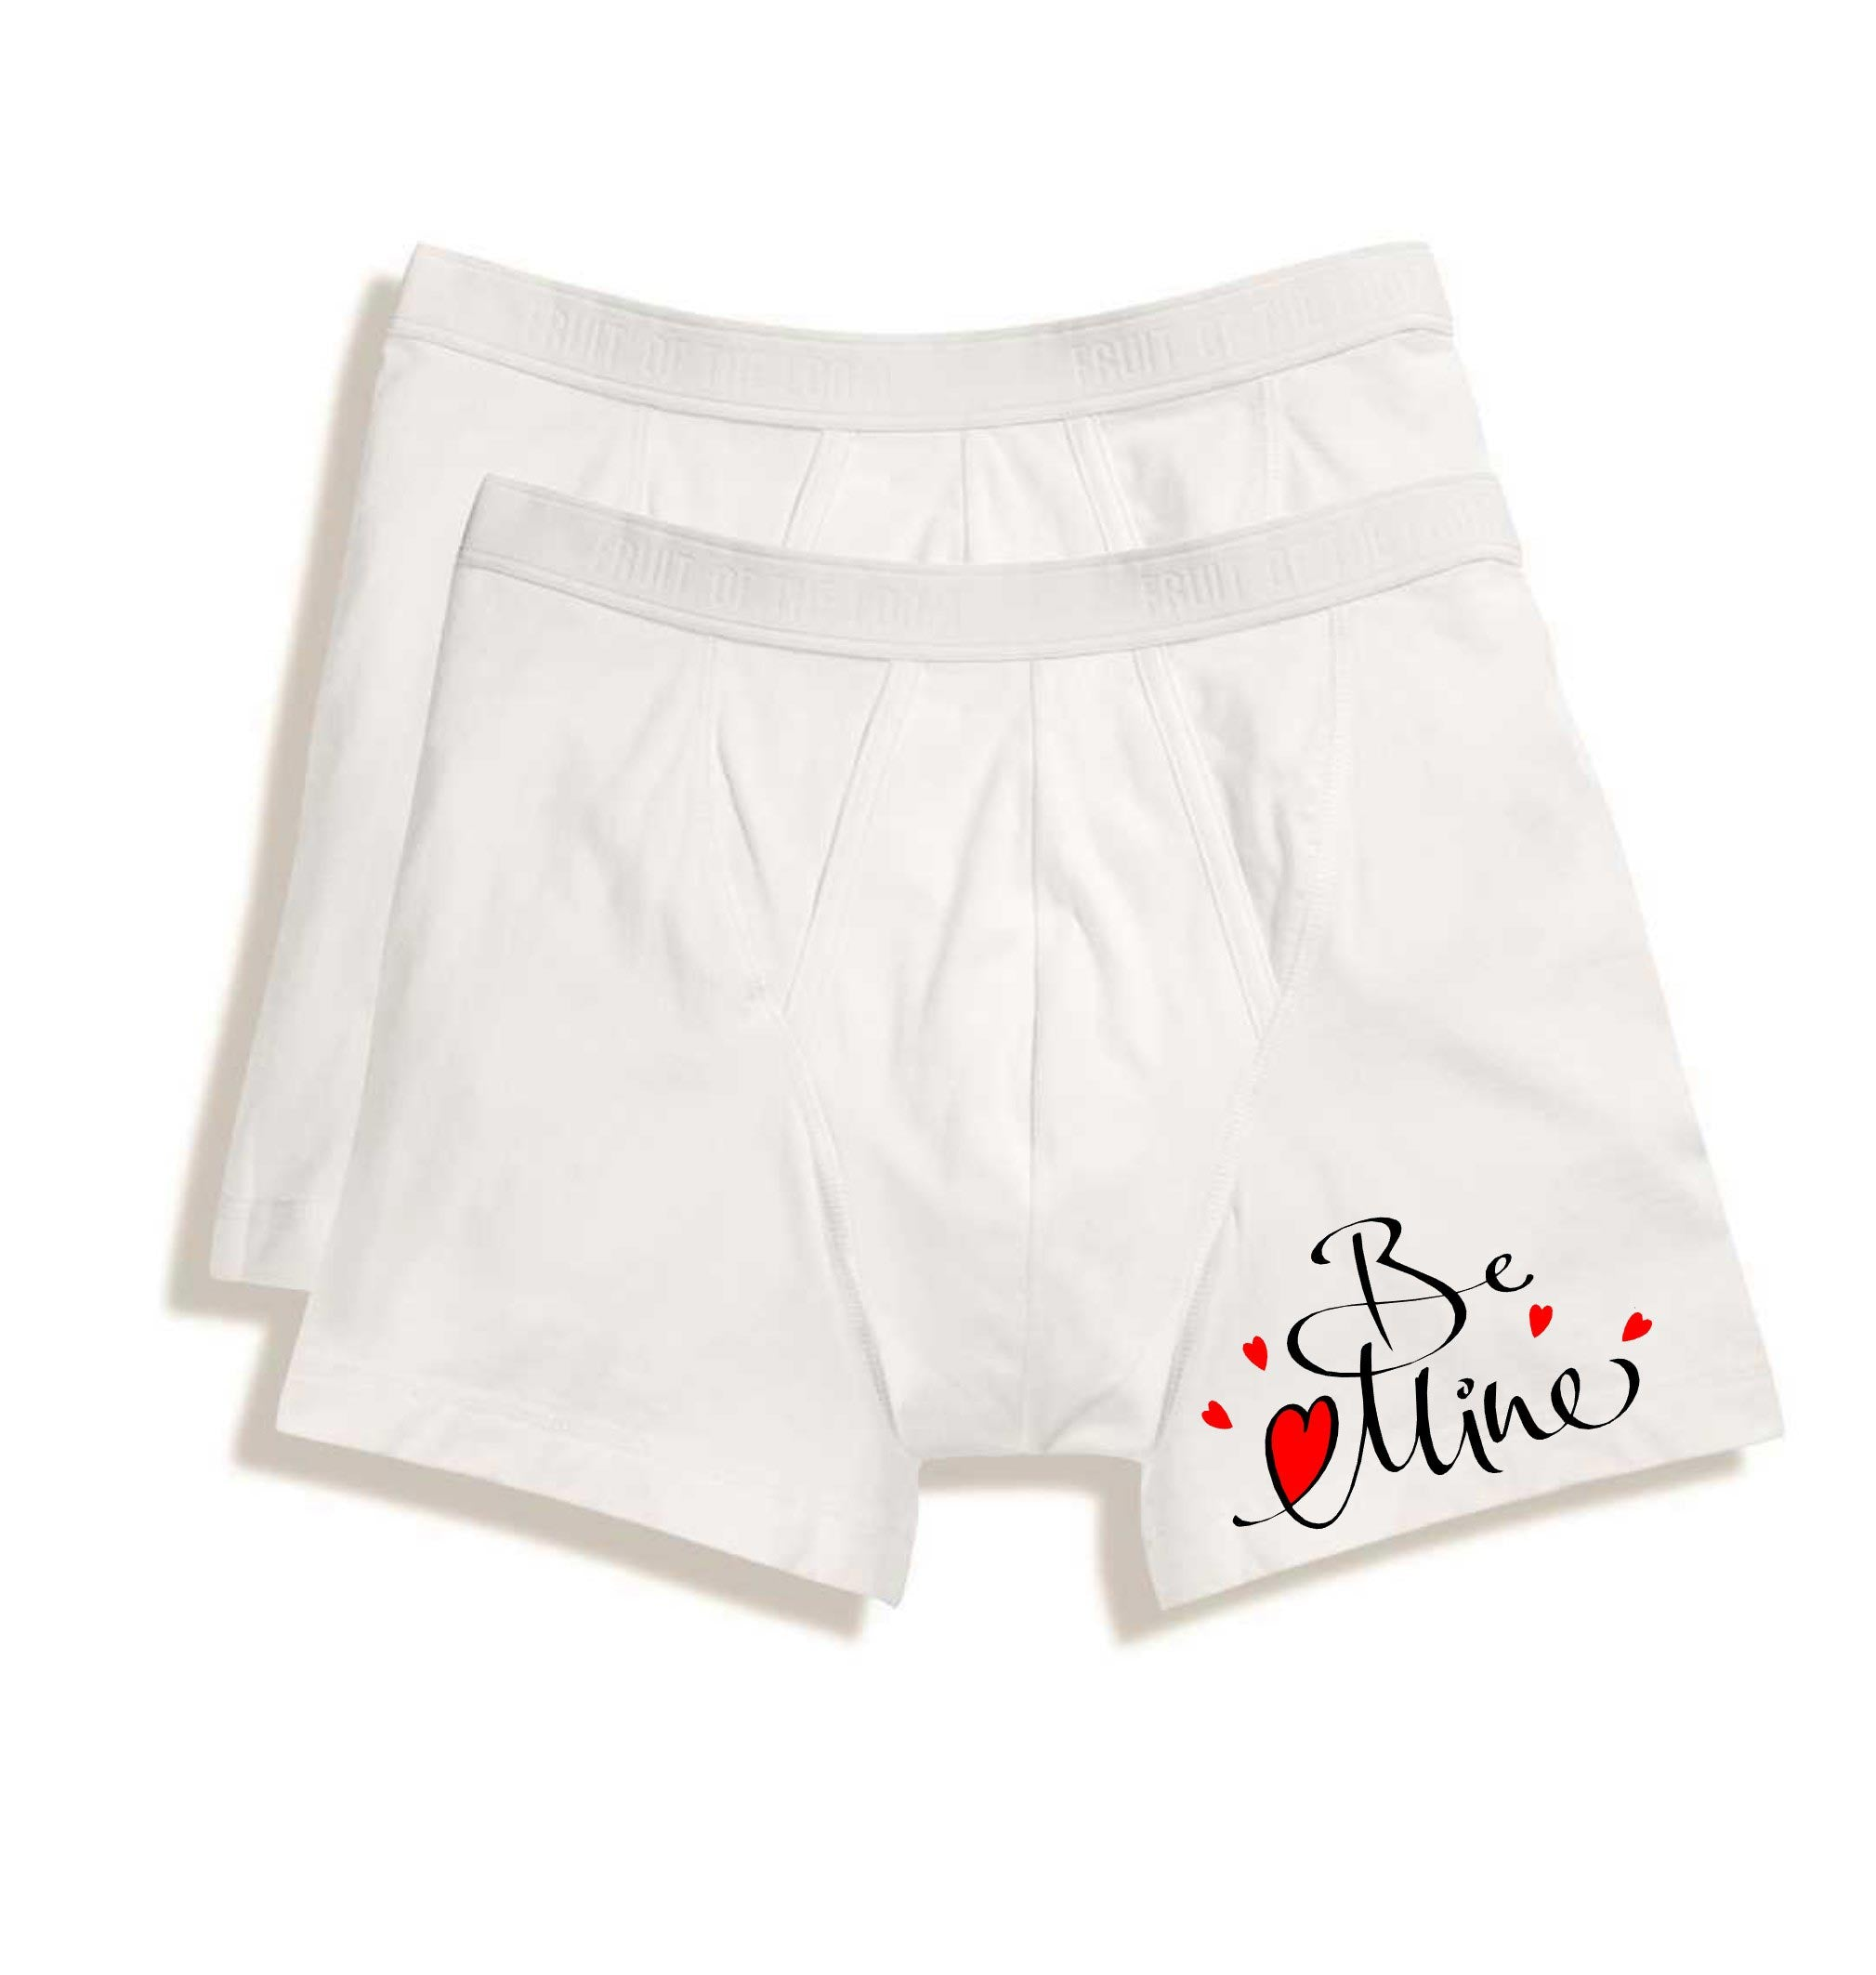 UNDERWEAR FOR MEN | BOXER BRIEFS - BE MINE - Georgie & Moon